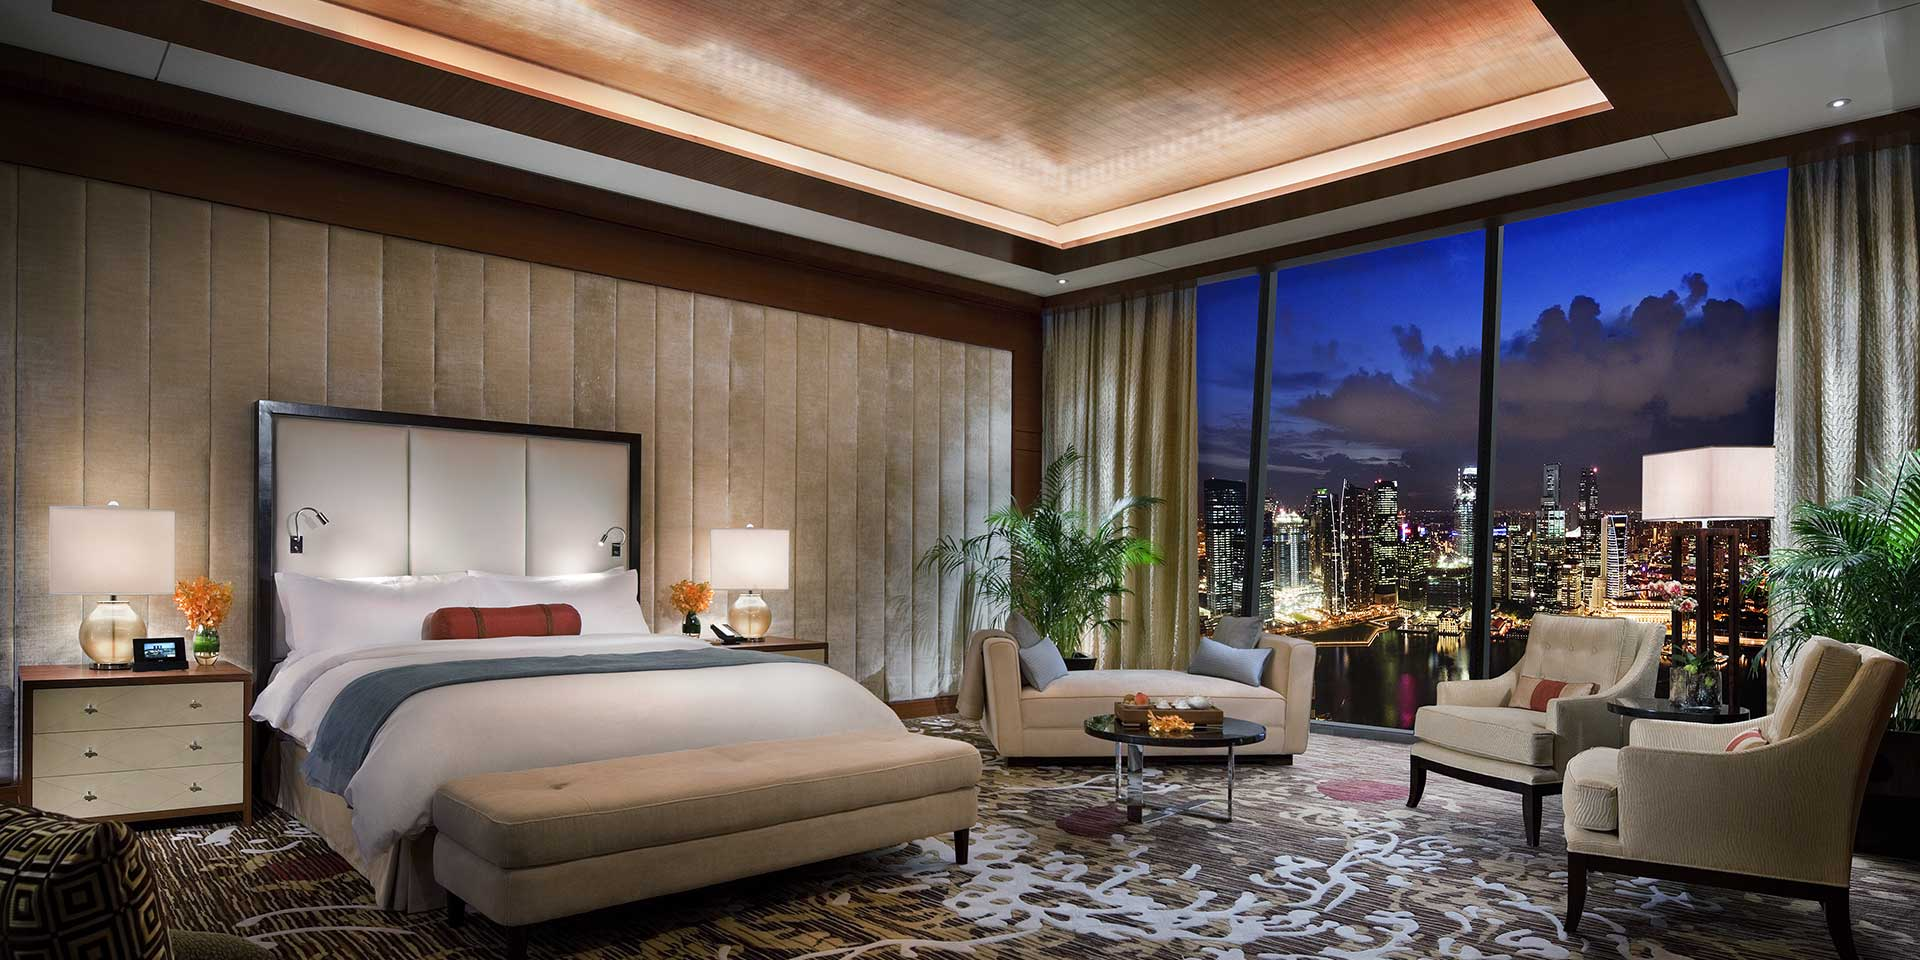 Presidential suite in marina bay sands singapore hotel for 20 rooms hotel